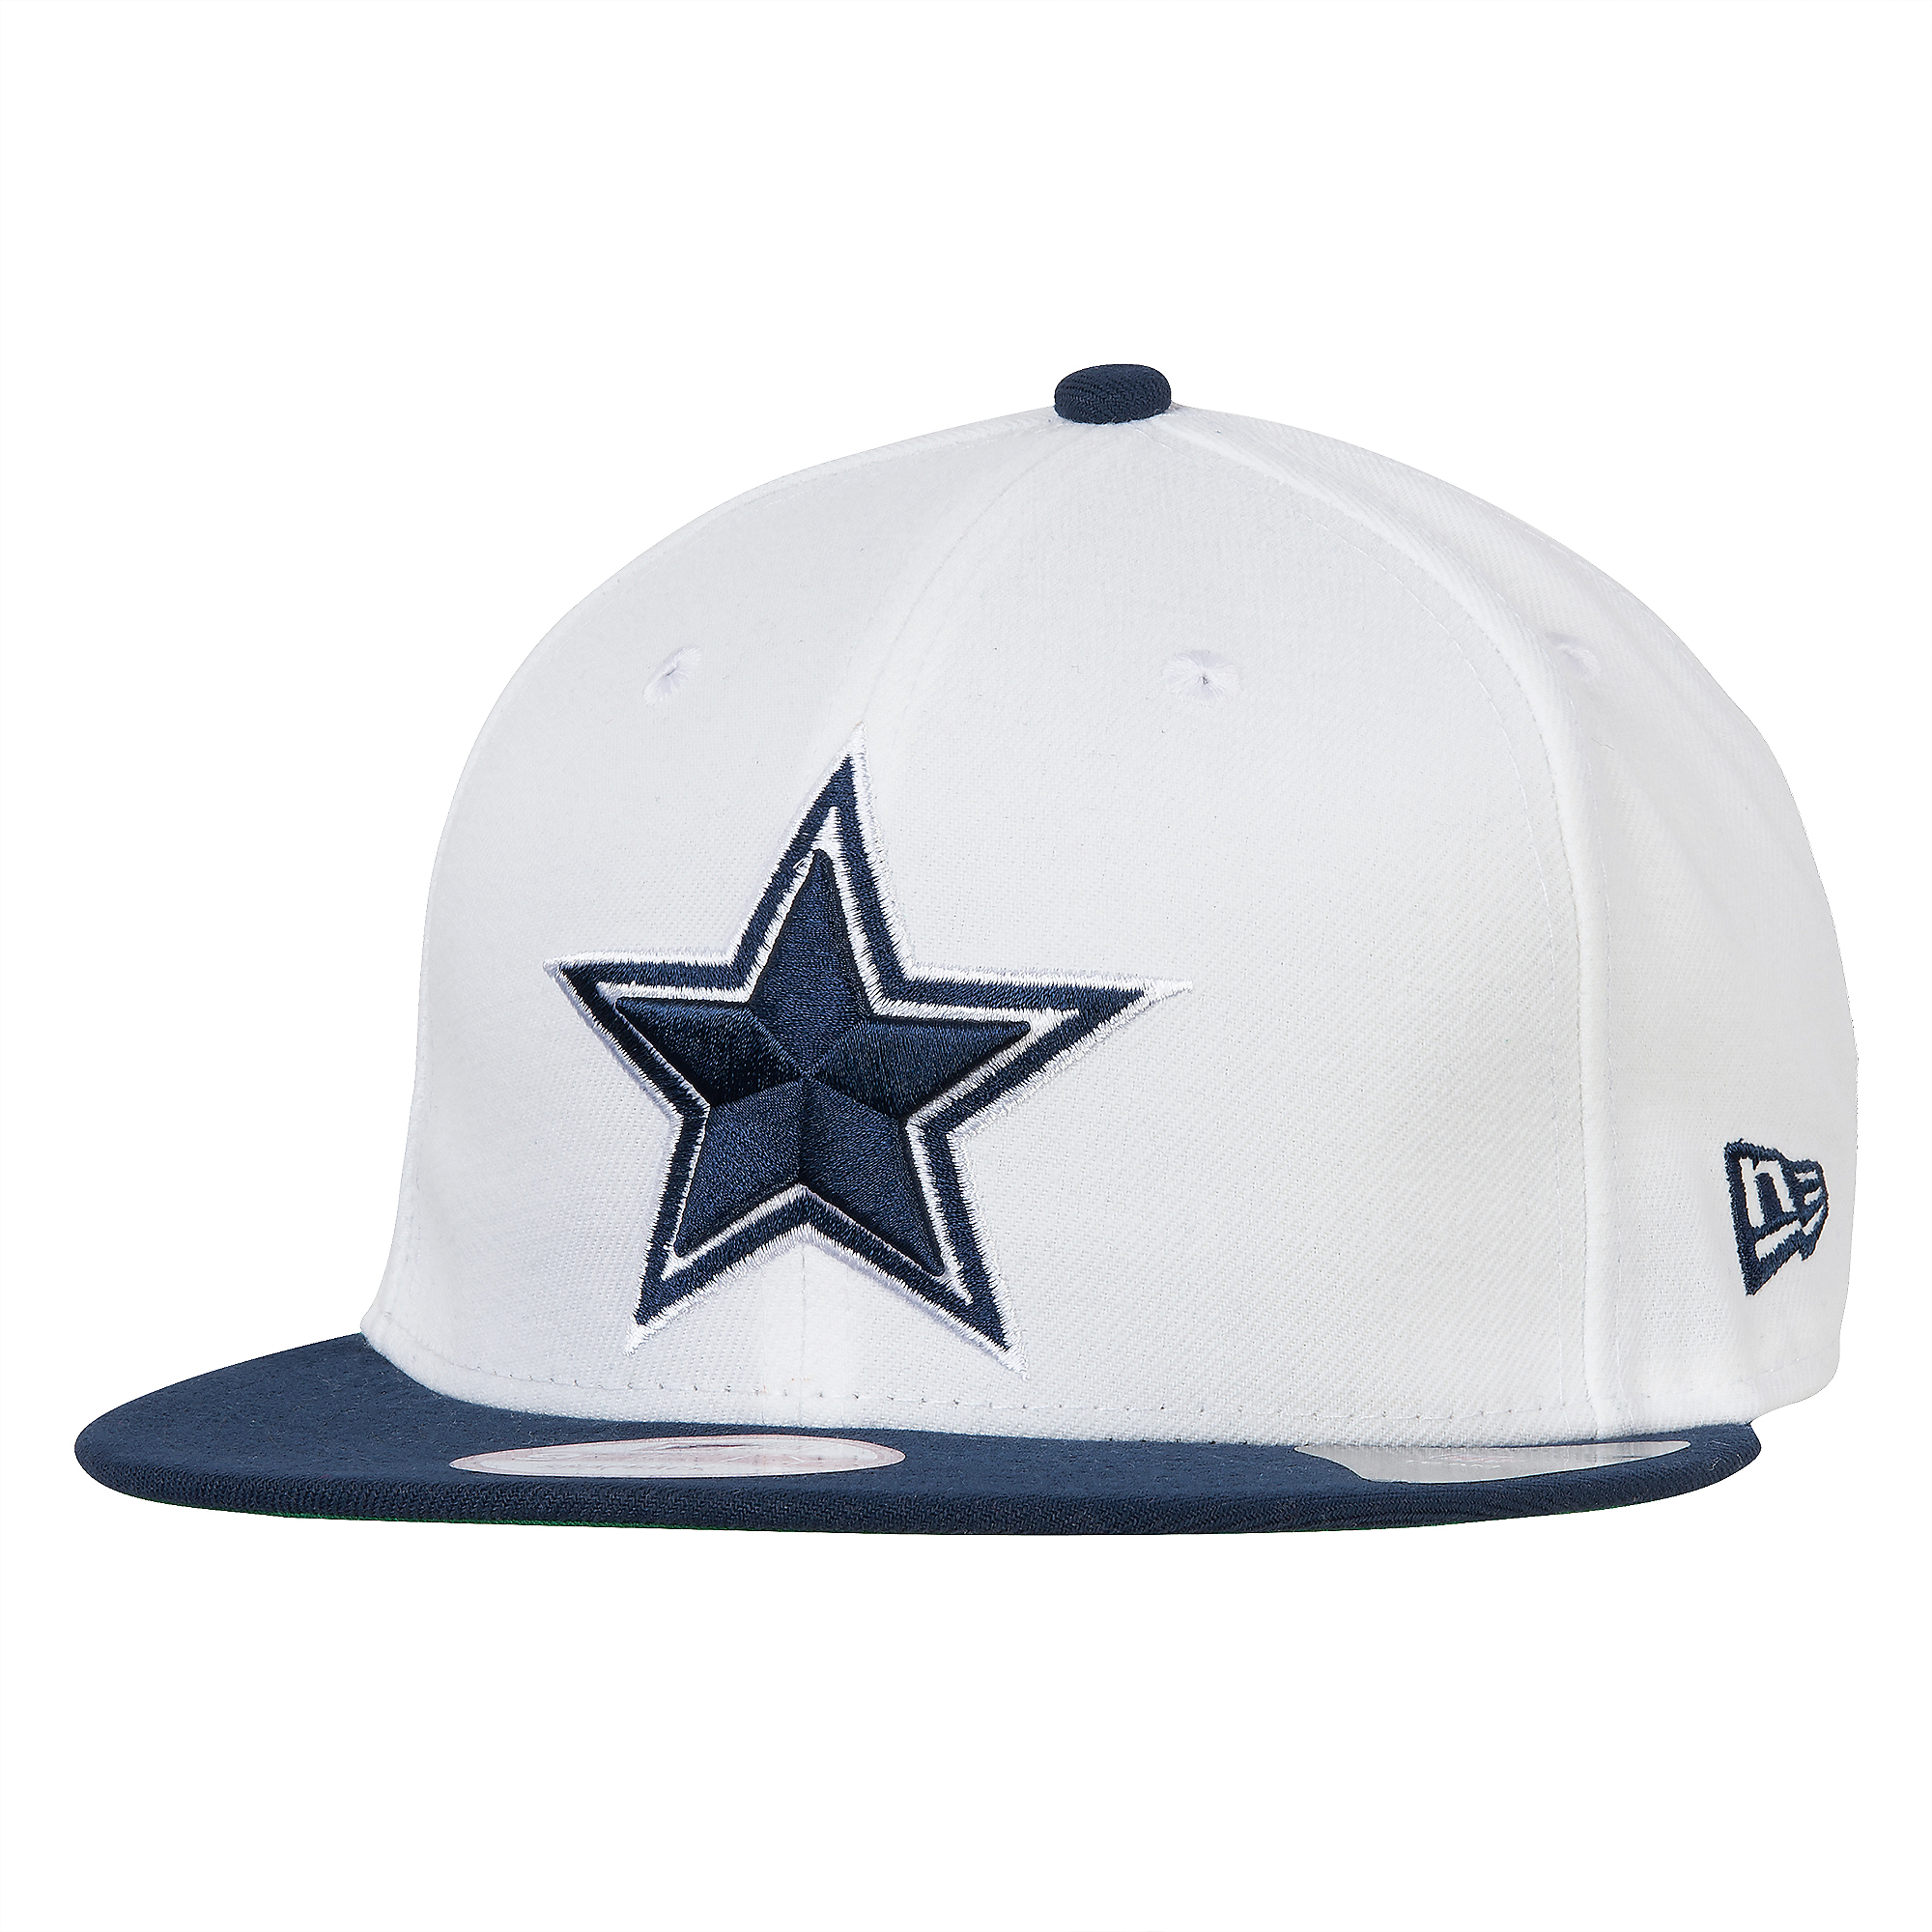 c8930cea2f3 Dallas Cowboys New Era Super Bowl XII 9Fifty Cap